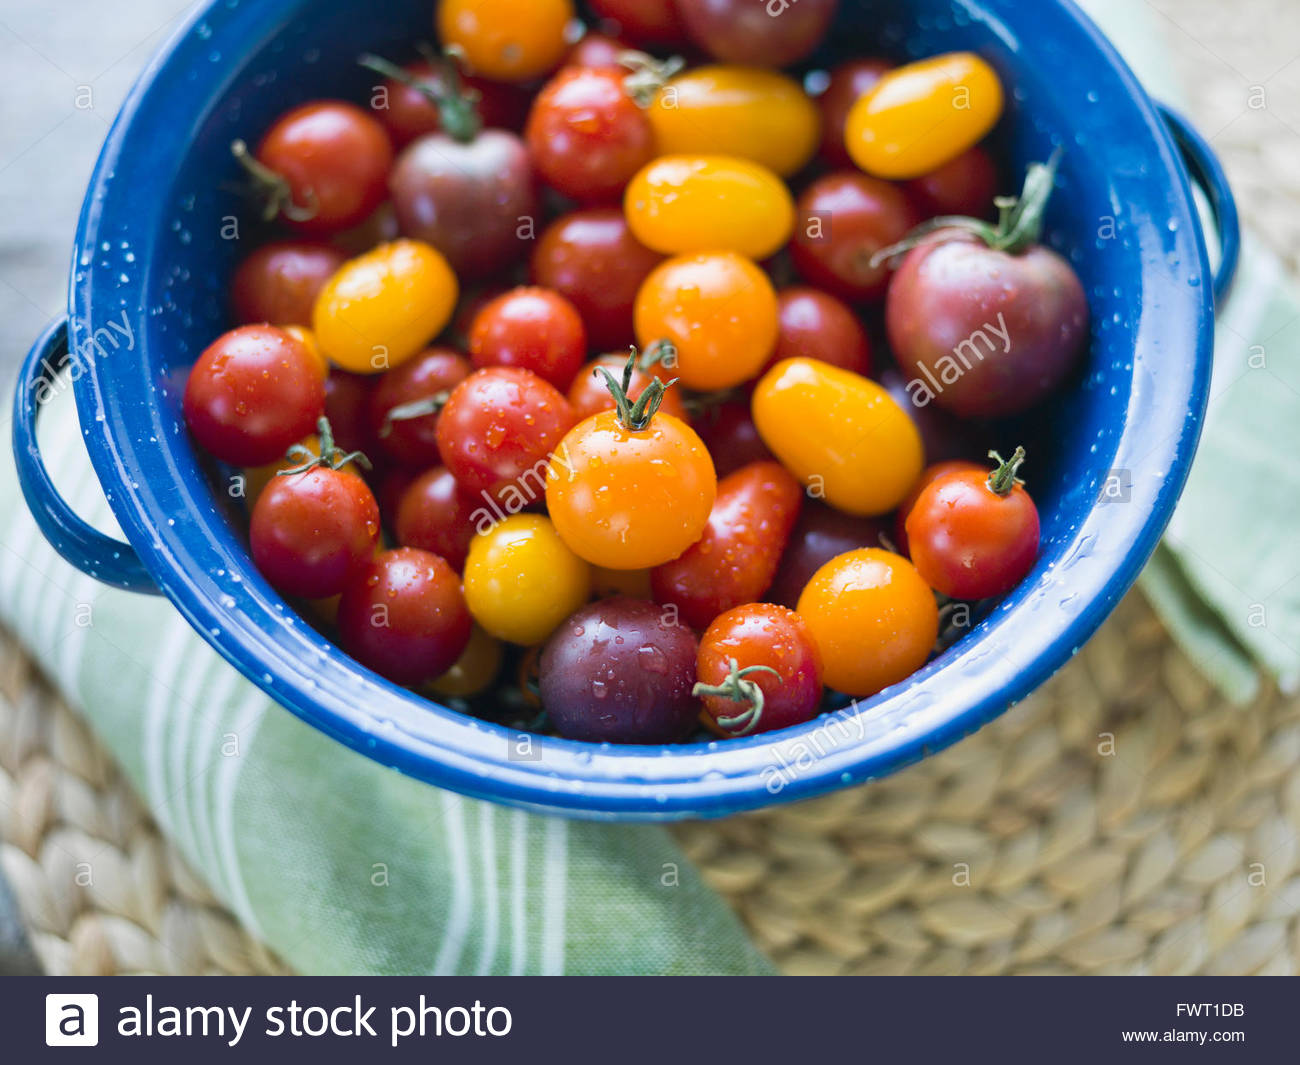 Washed cherry Tomatoes in colander - Stock Image